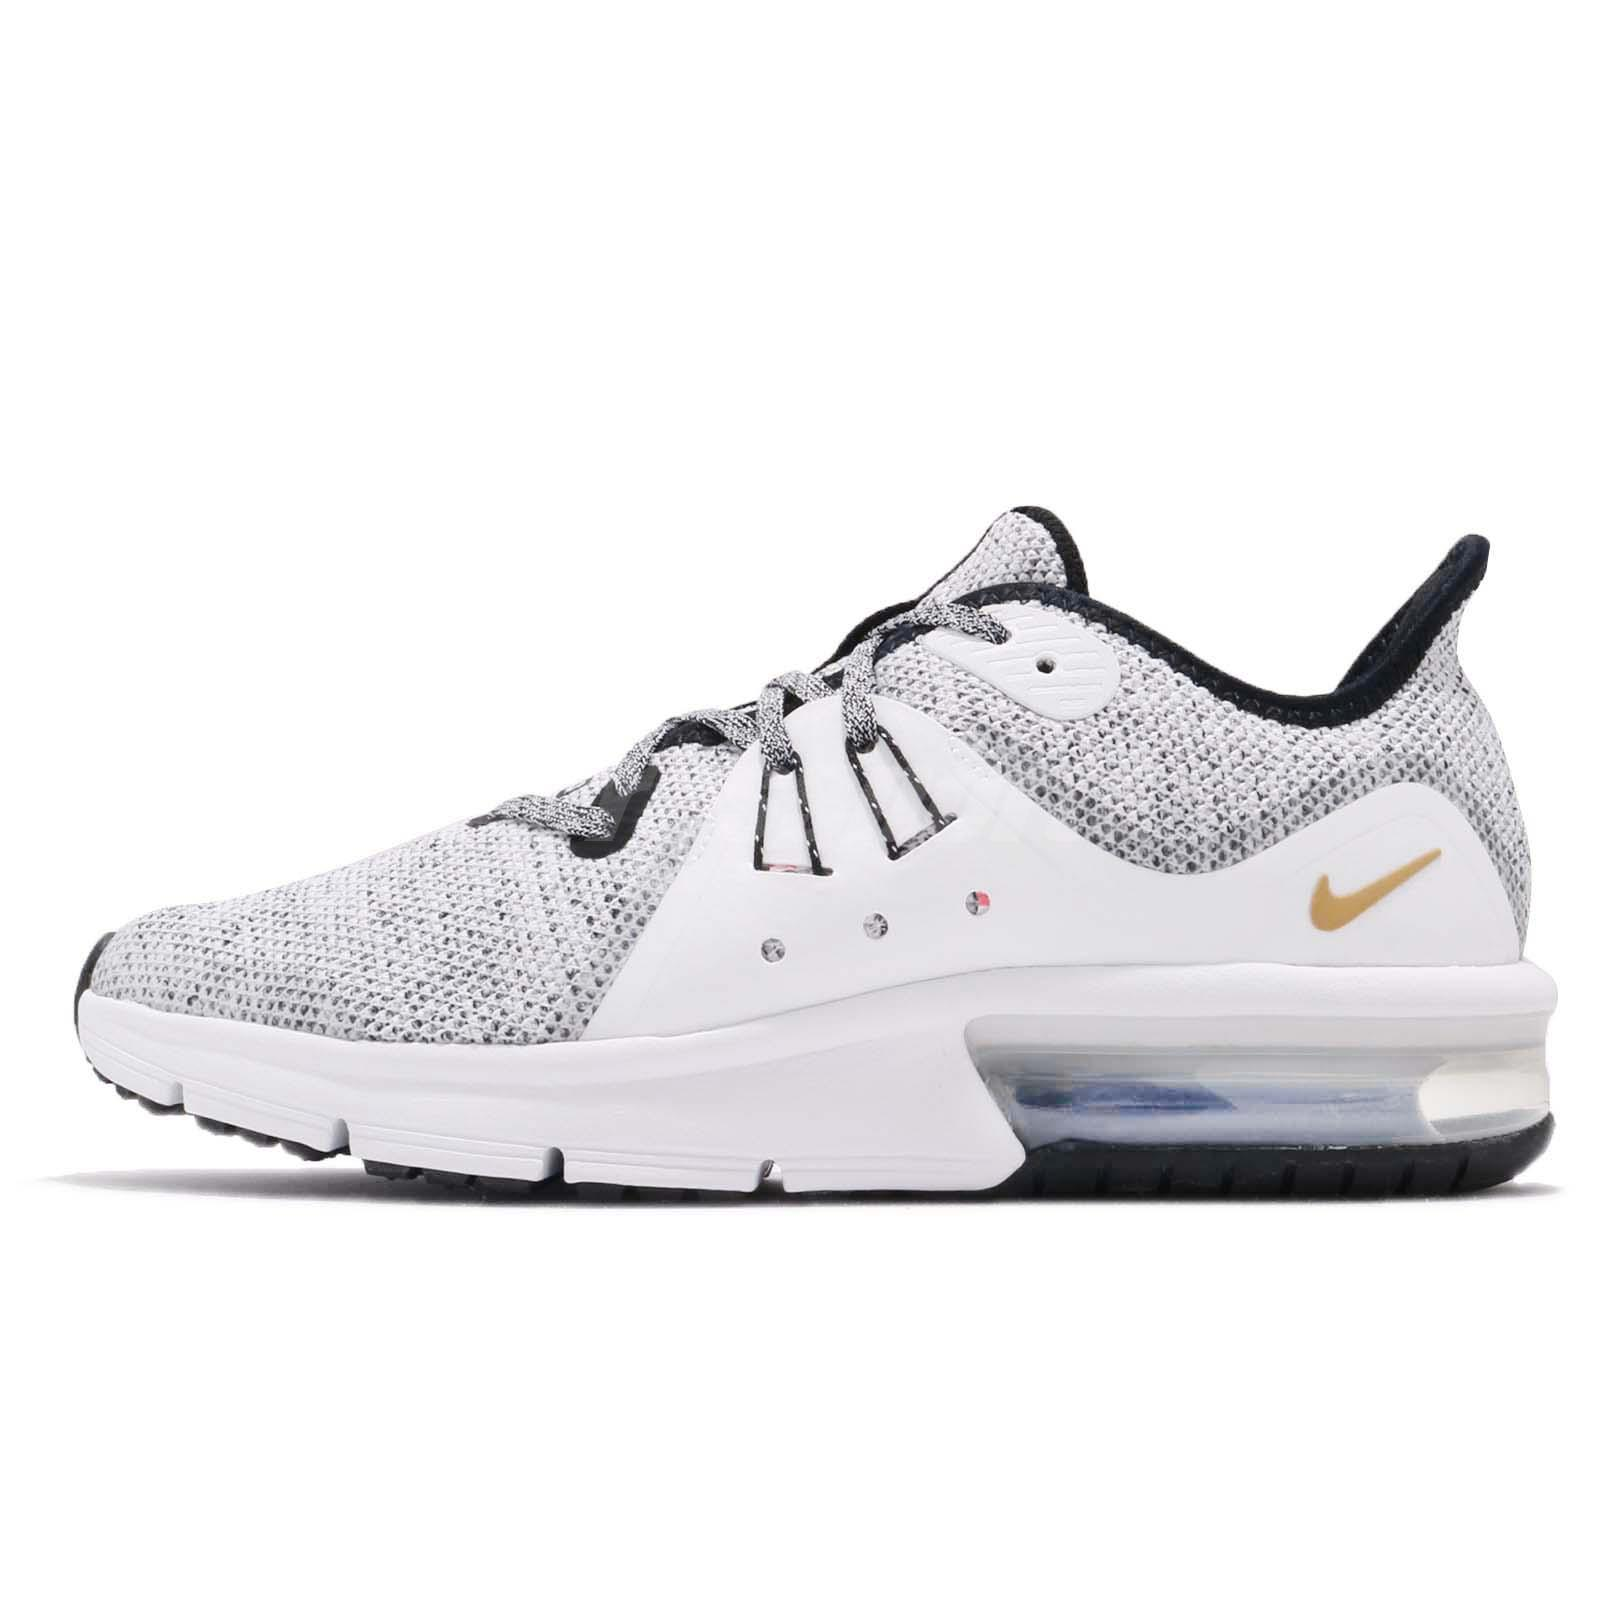 on sale 00ec5 1df2f Nike Air Max Sequent 3 GS Black White Kids Youth Women Running Shoes 922884- 007